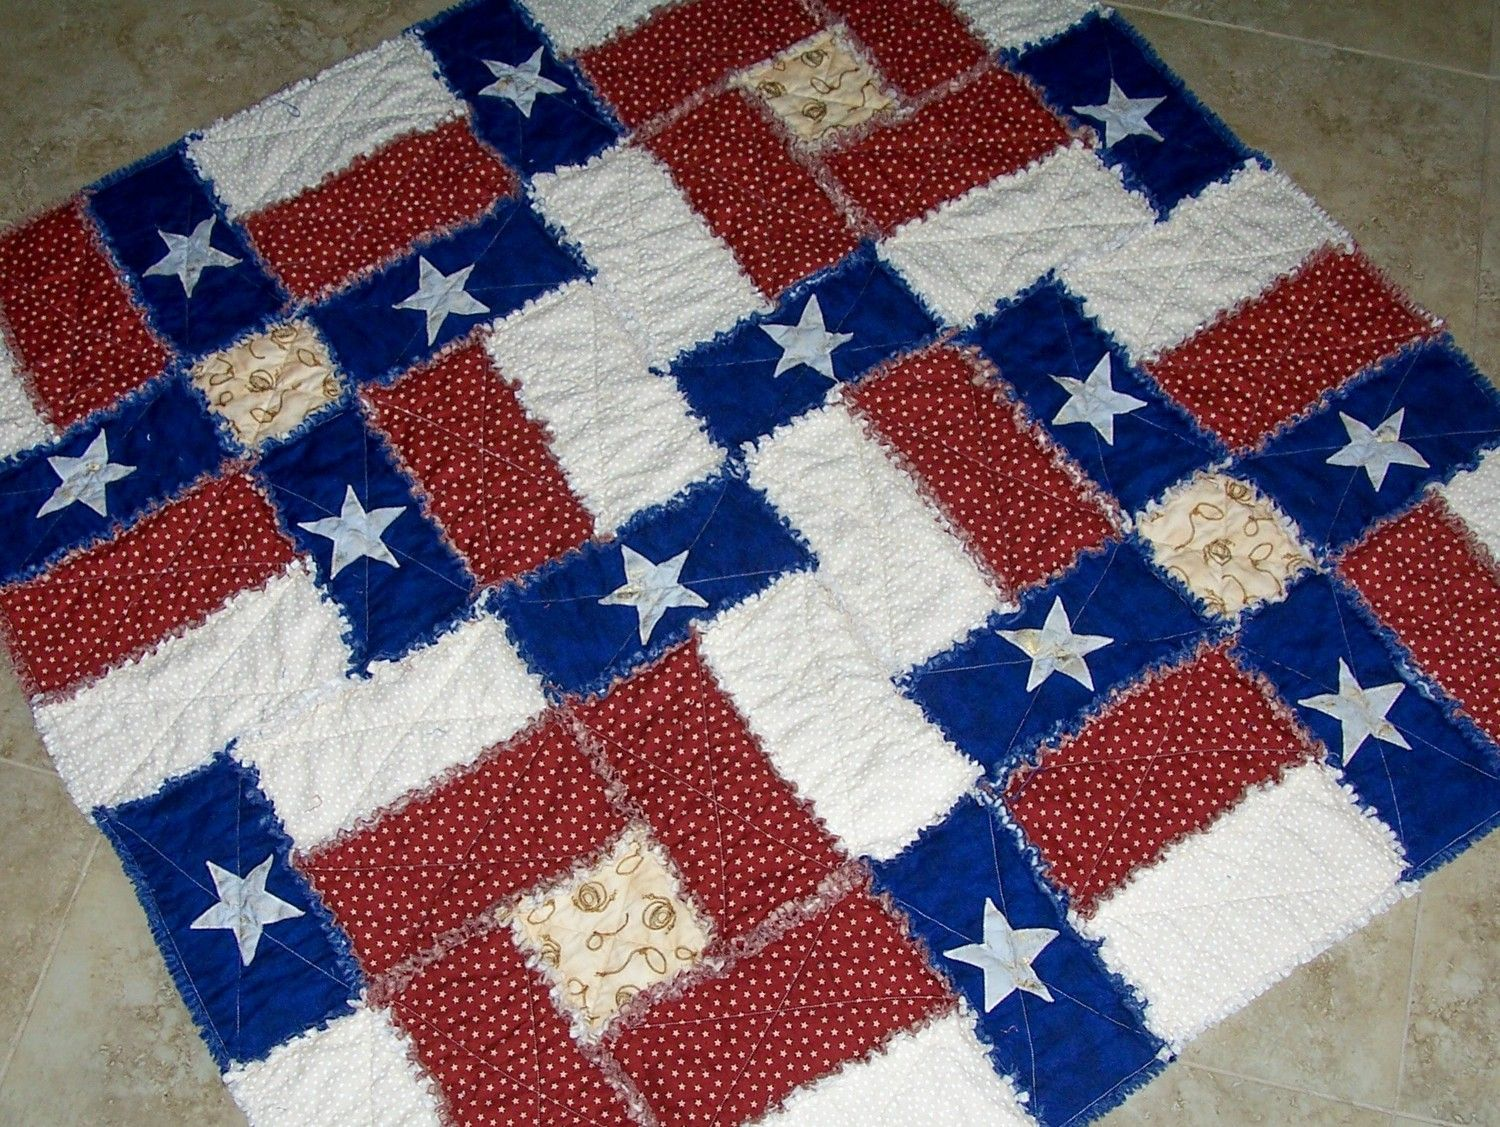 TEXAS FLAG RAG Quilt Pattern Can be made with regular cottons or ... : rag quilt patterns for beginners - Adamdwight.com